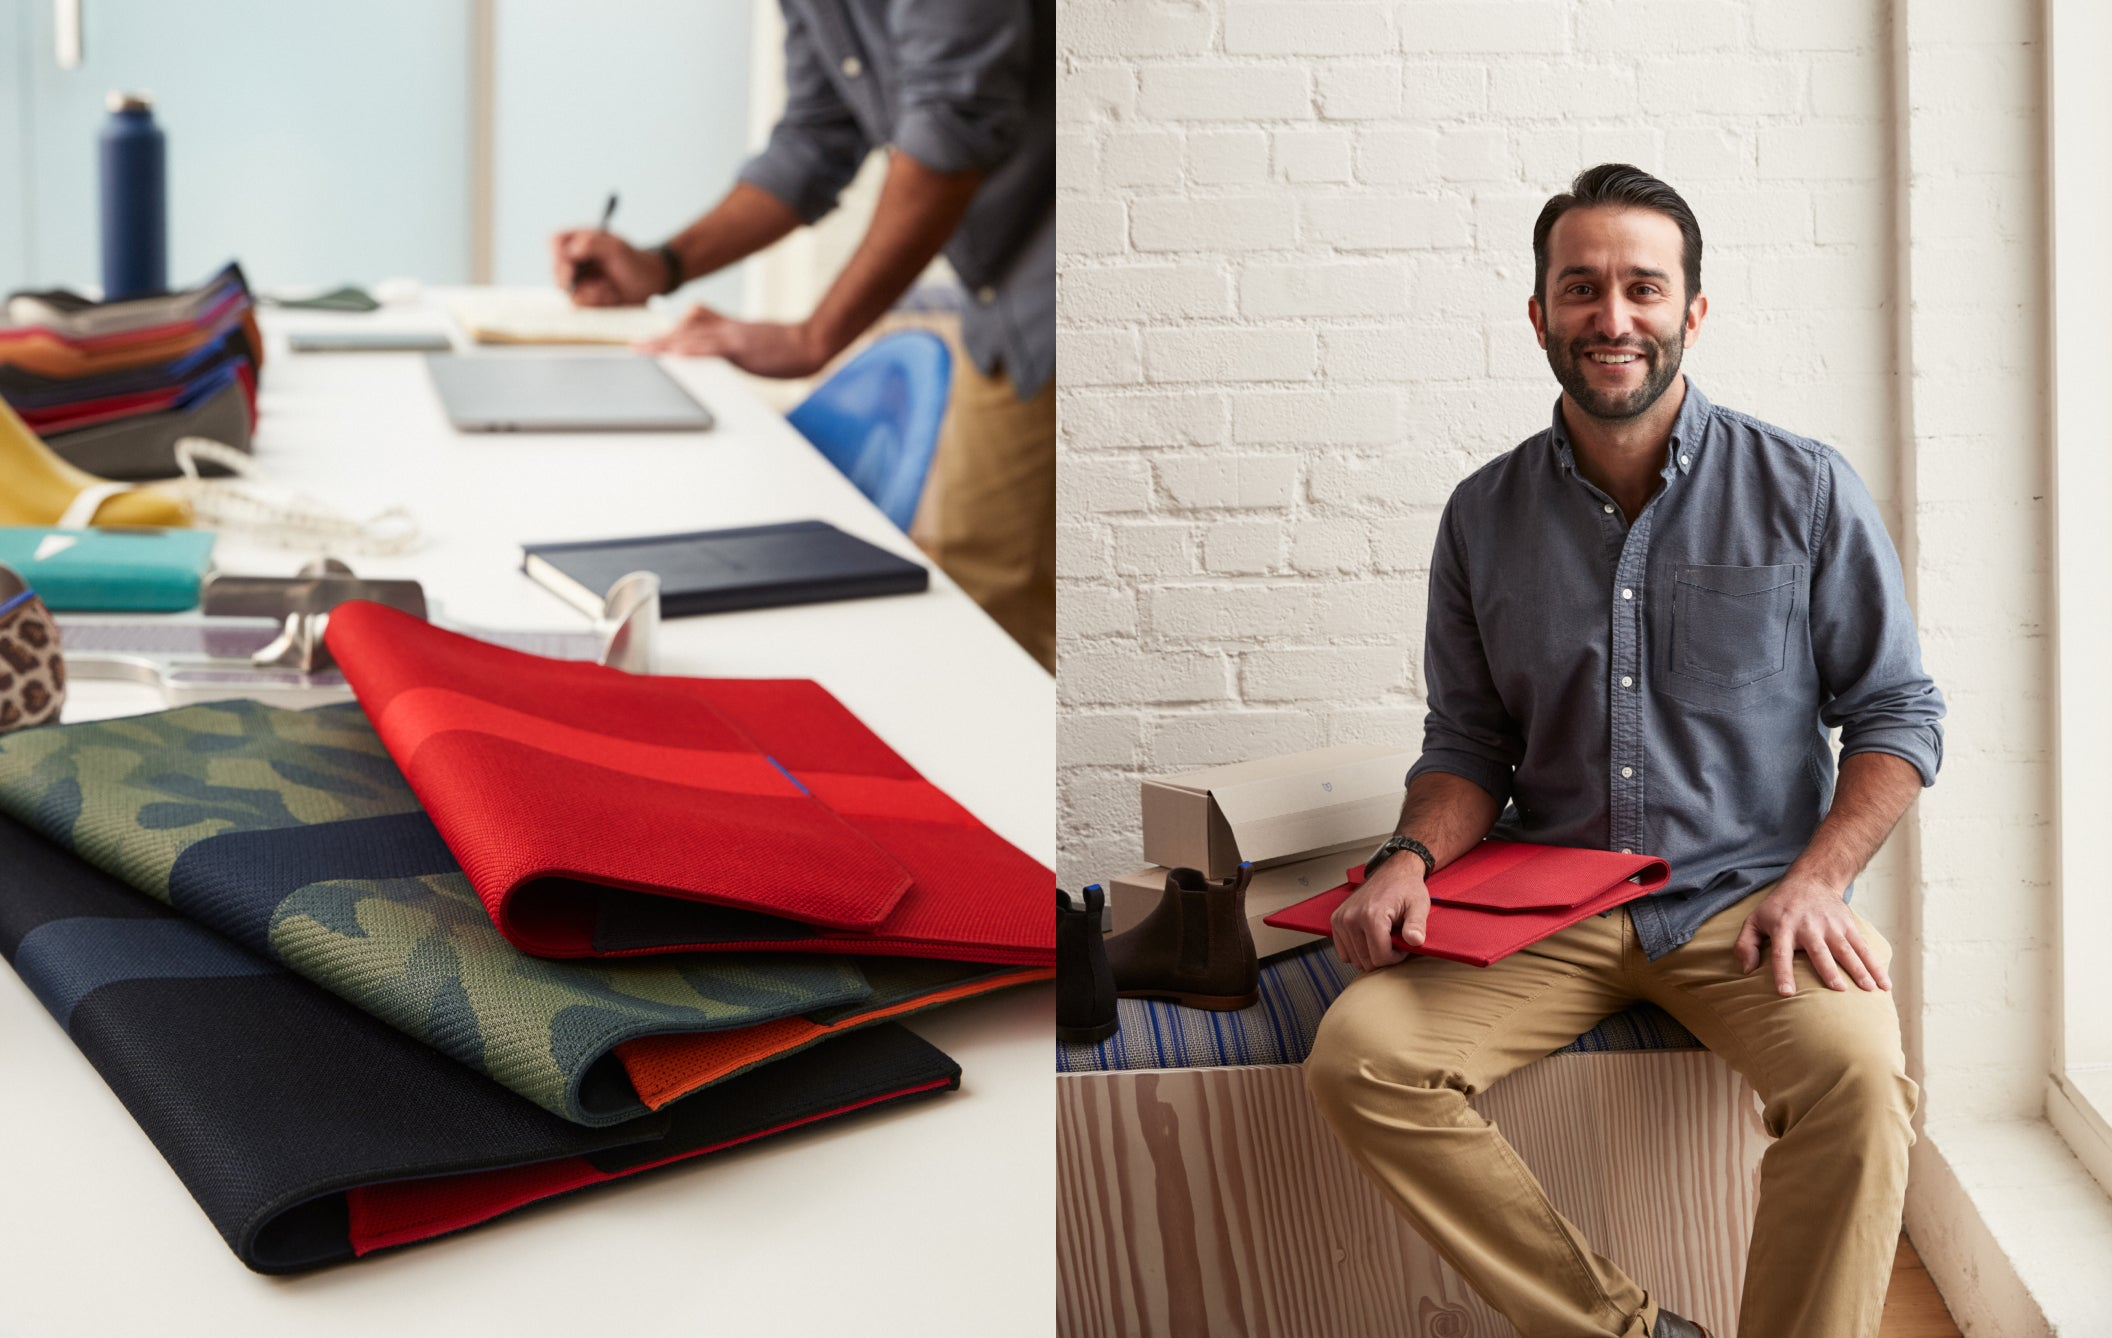 On the left, a table with design materials and a stacked assortment of The Portfolio. On the right, a man sitting on a bench holding The Portfolio in Ruby Red, in front of a white brick background.